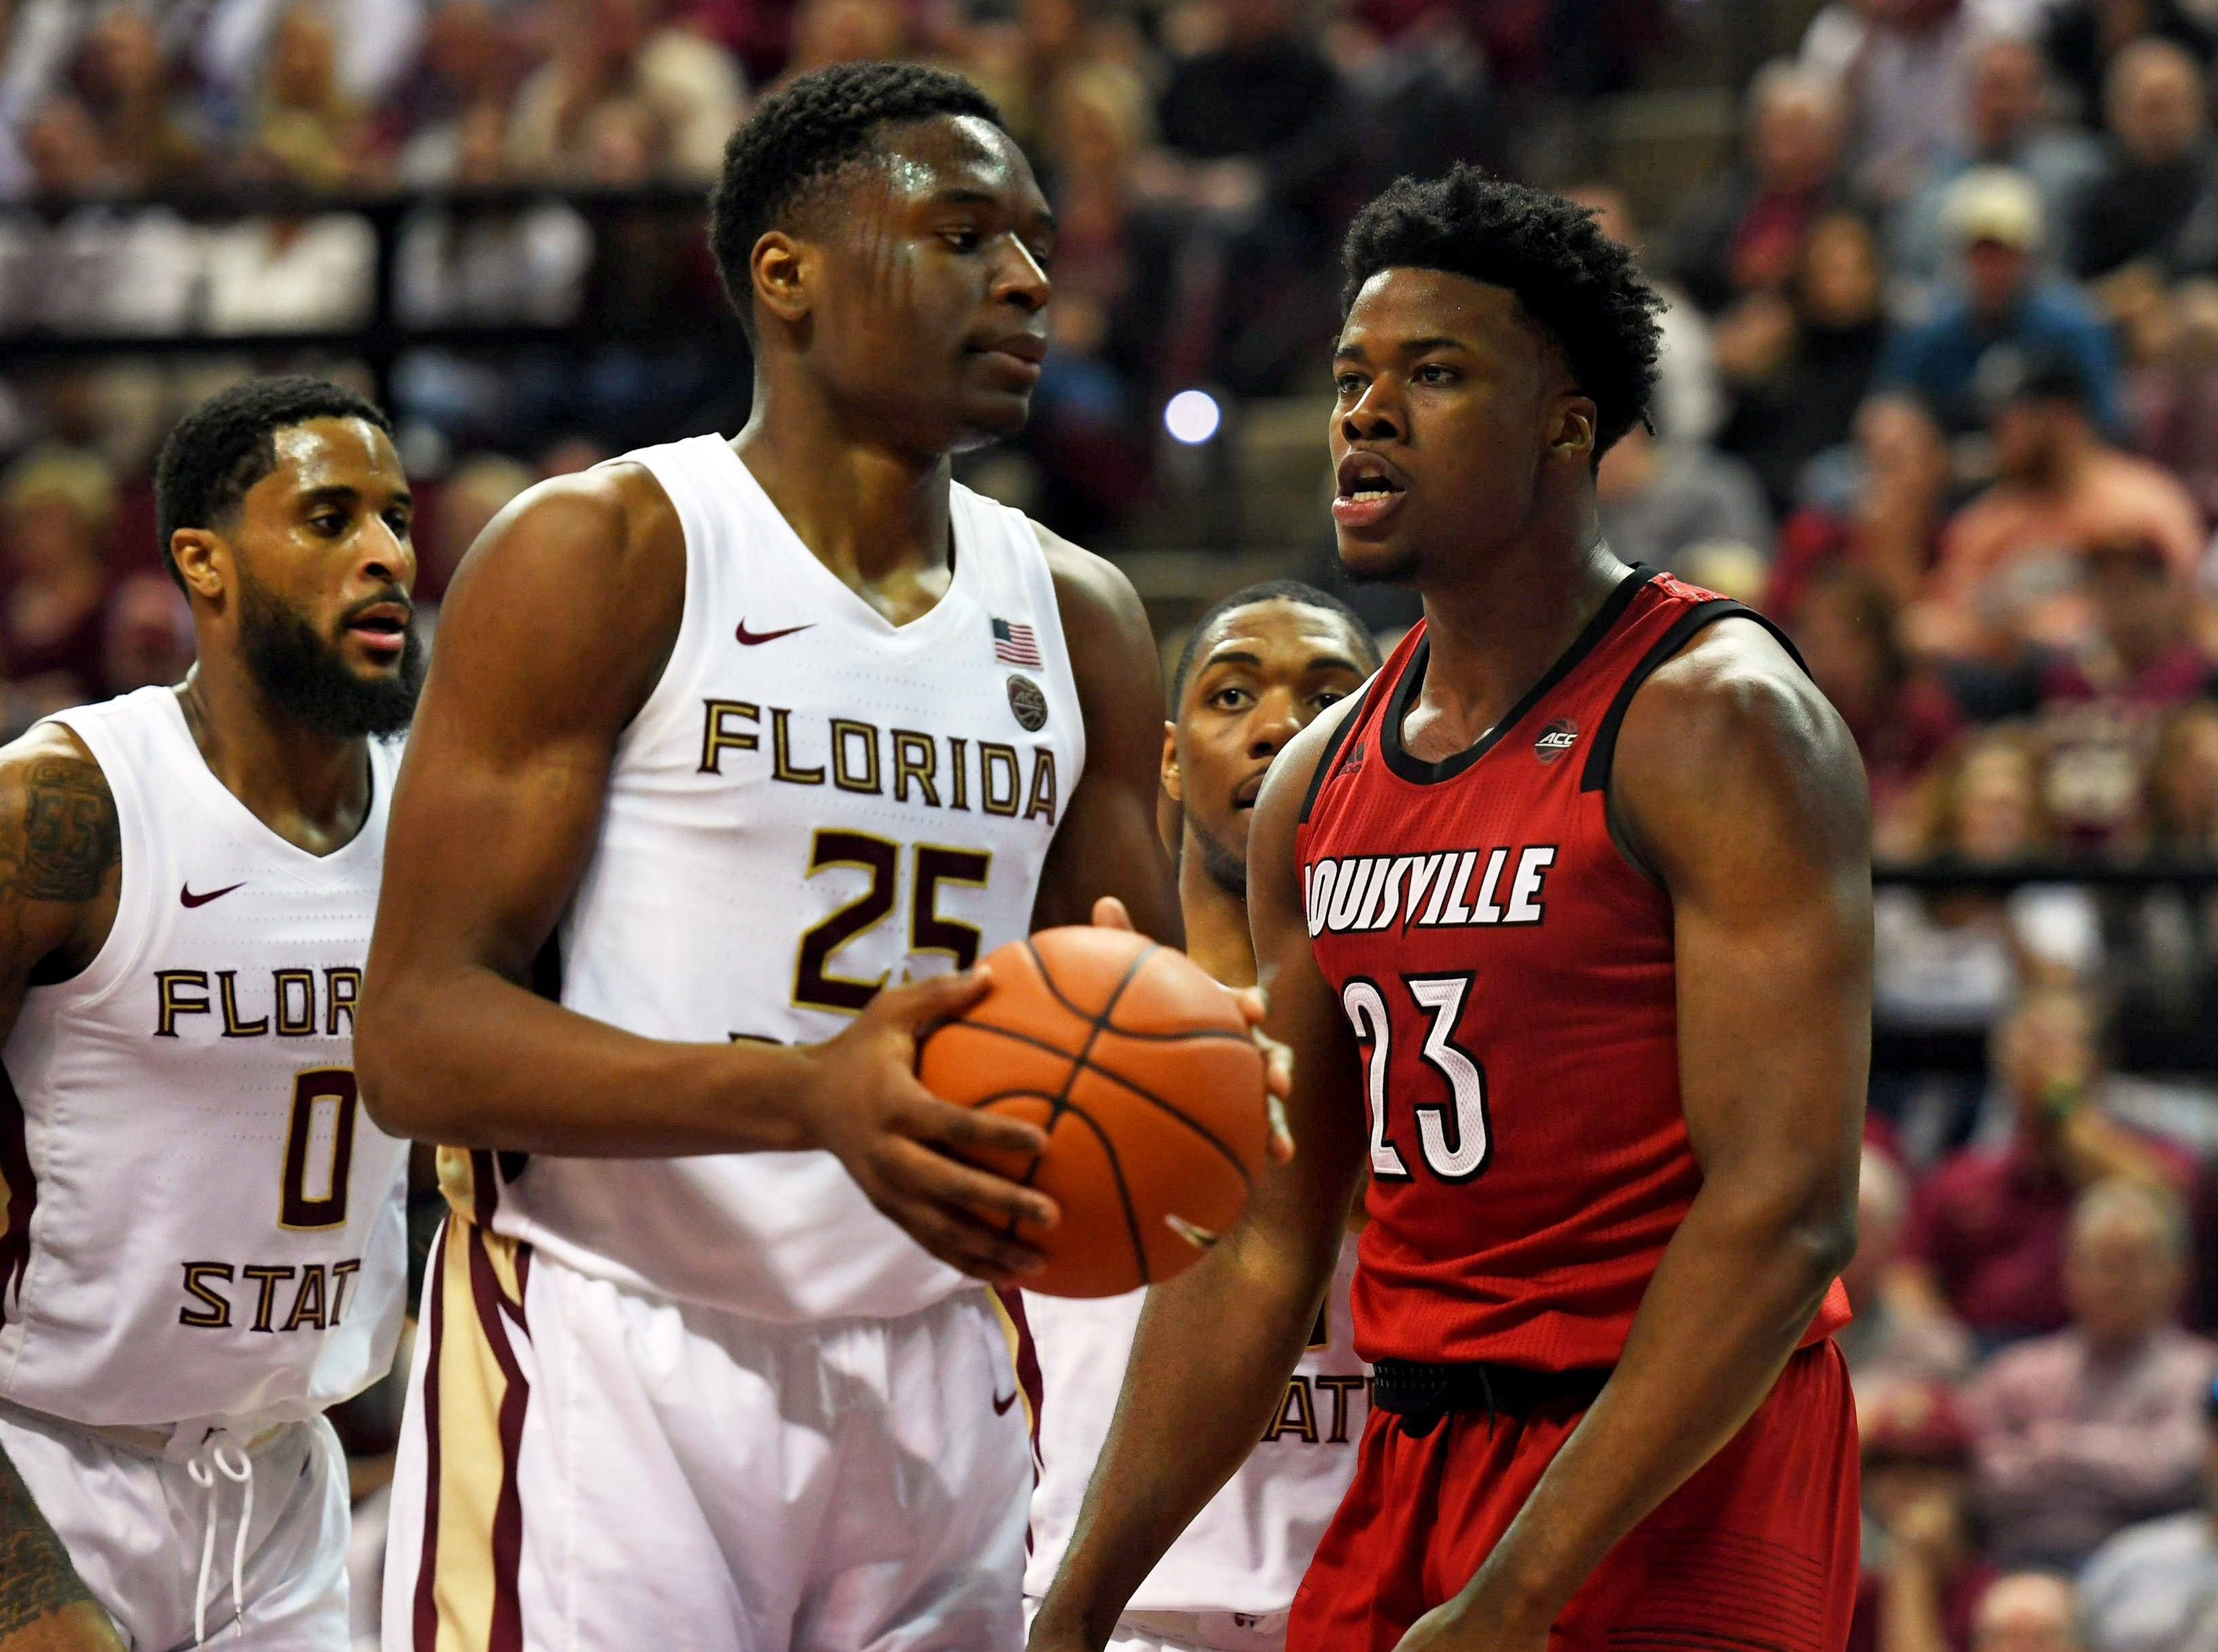 Feb 9, 2019; Tallahassee, FL, USA; Louisville Cardinals center Steven Enoch (23) receives a technical foul as he gets in the face of Florida State Seminoles forward Mfiondu Kabengele (25) during the second half at Donald L. Tucker Center. Mandatory Credit: Melina Myers-USA TODAY Sports